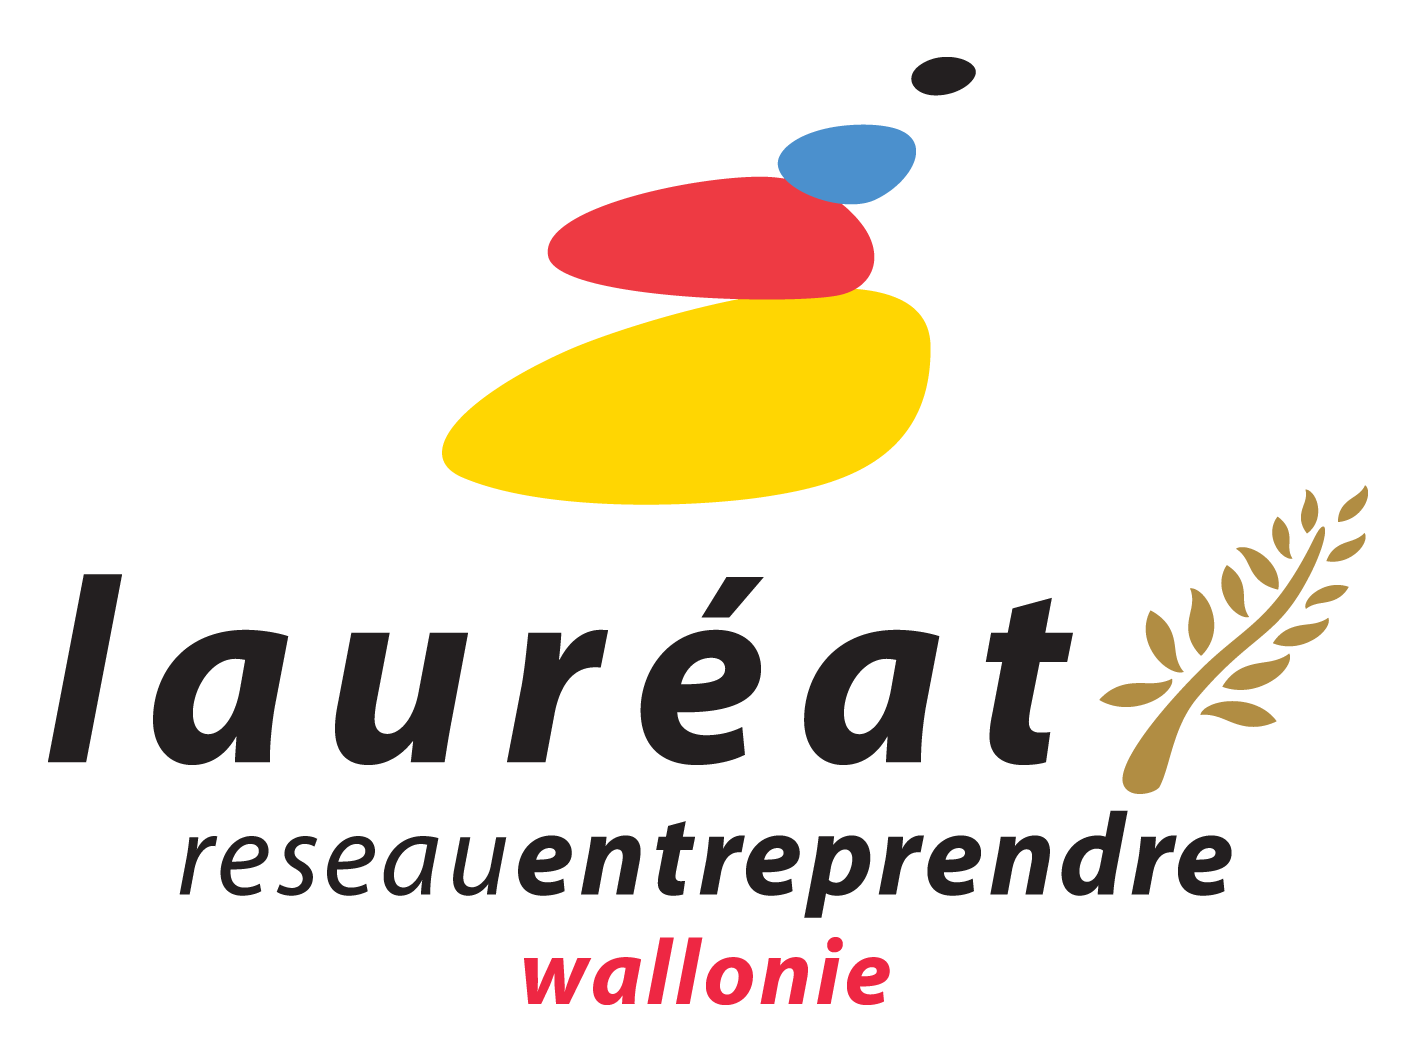 Logo laure%cc%81at re wallonie couleur gggaiy